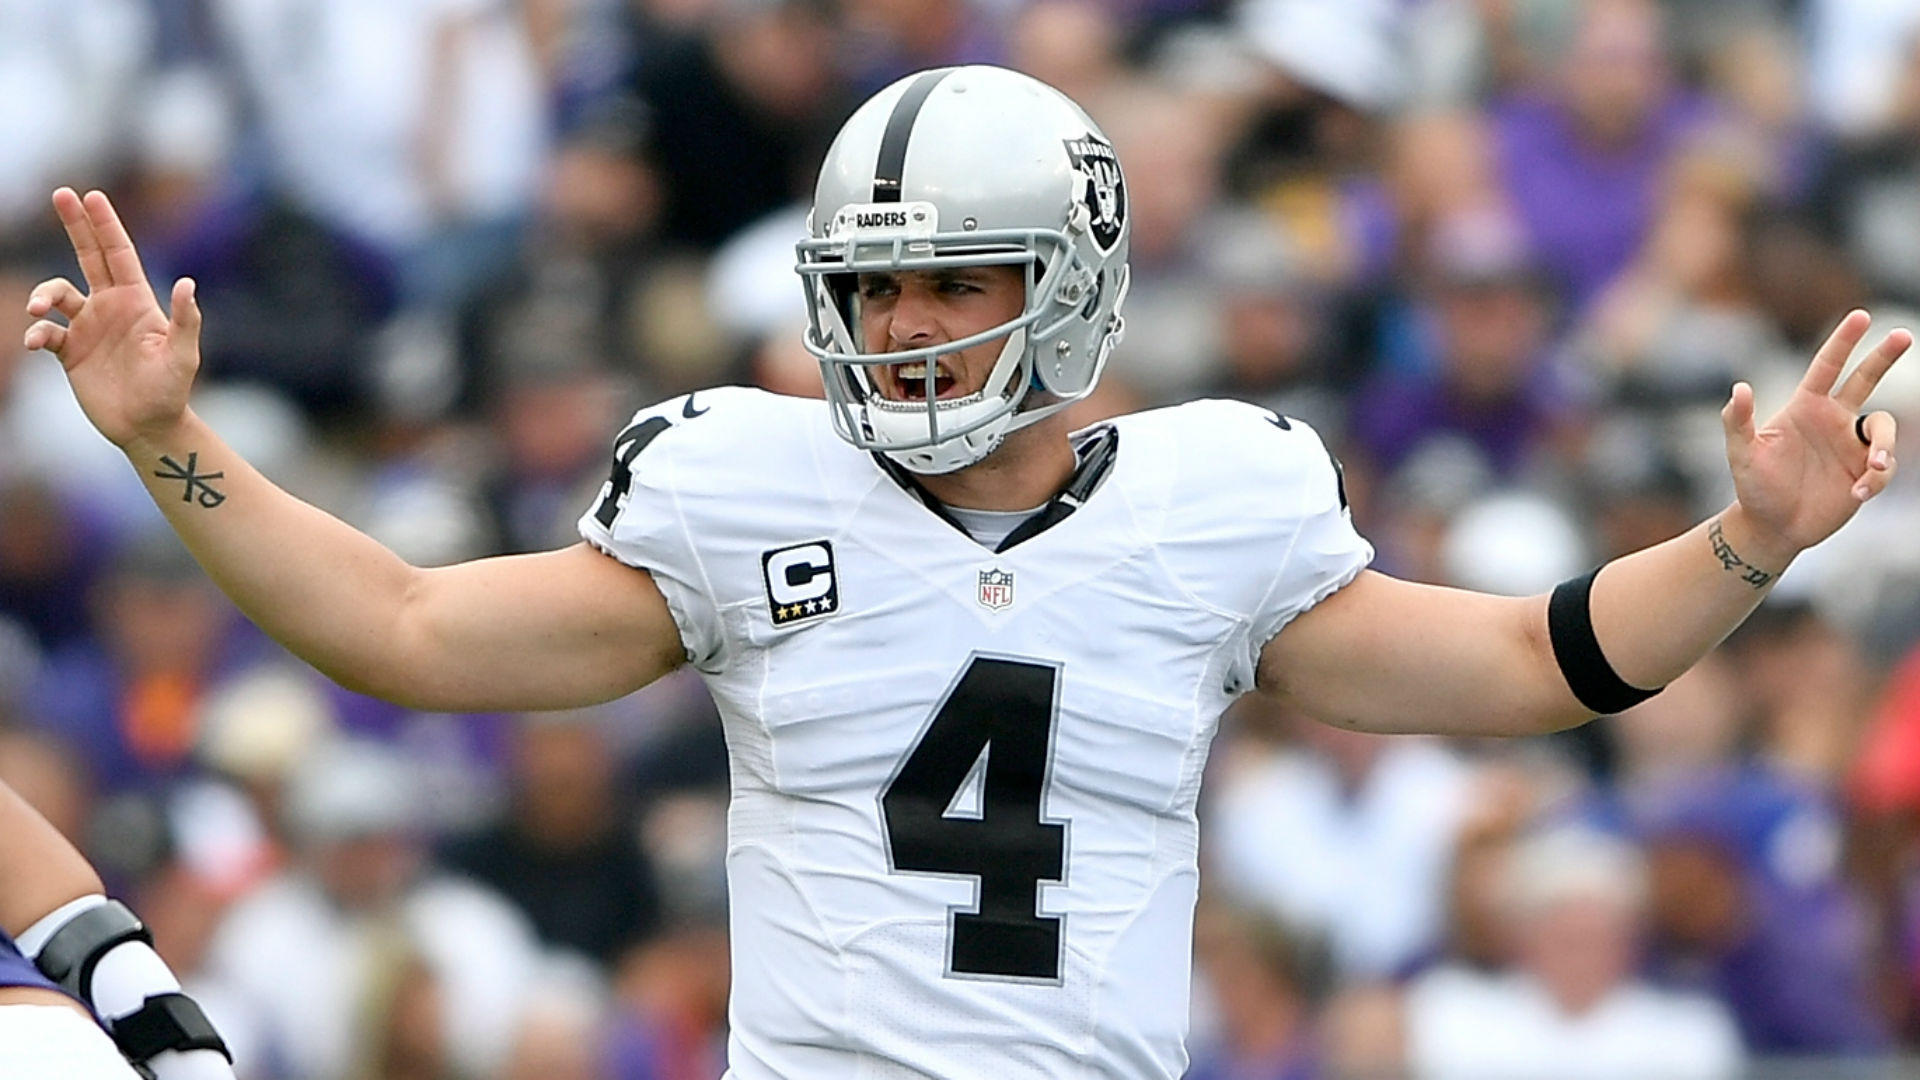 Nfl Mvp Race Leader Is Obvious For Now Nfl Sporting News